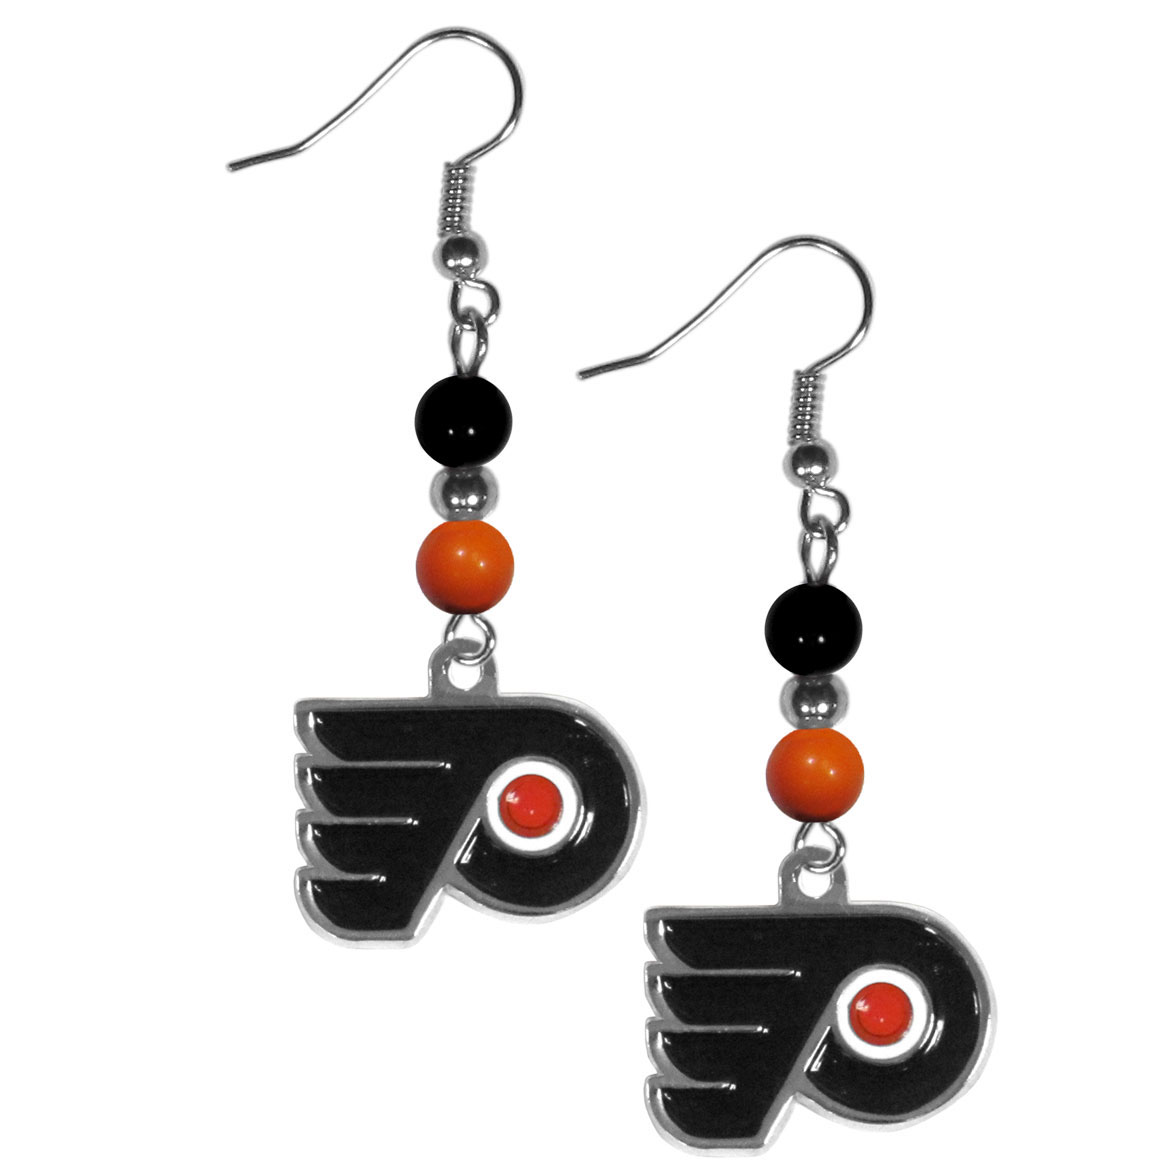 Philadelphia Flyers® Fan Bead Dangle Earrings - Love your team, show it off with our Philadelphia Flyers® bead dangle earrings! These super cute earrings hang approximately 2 inches and features 2 team colored beads and a high polish team charm. A must have for game day!